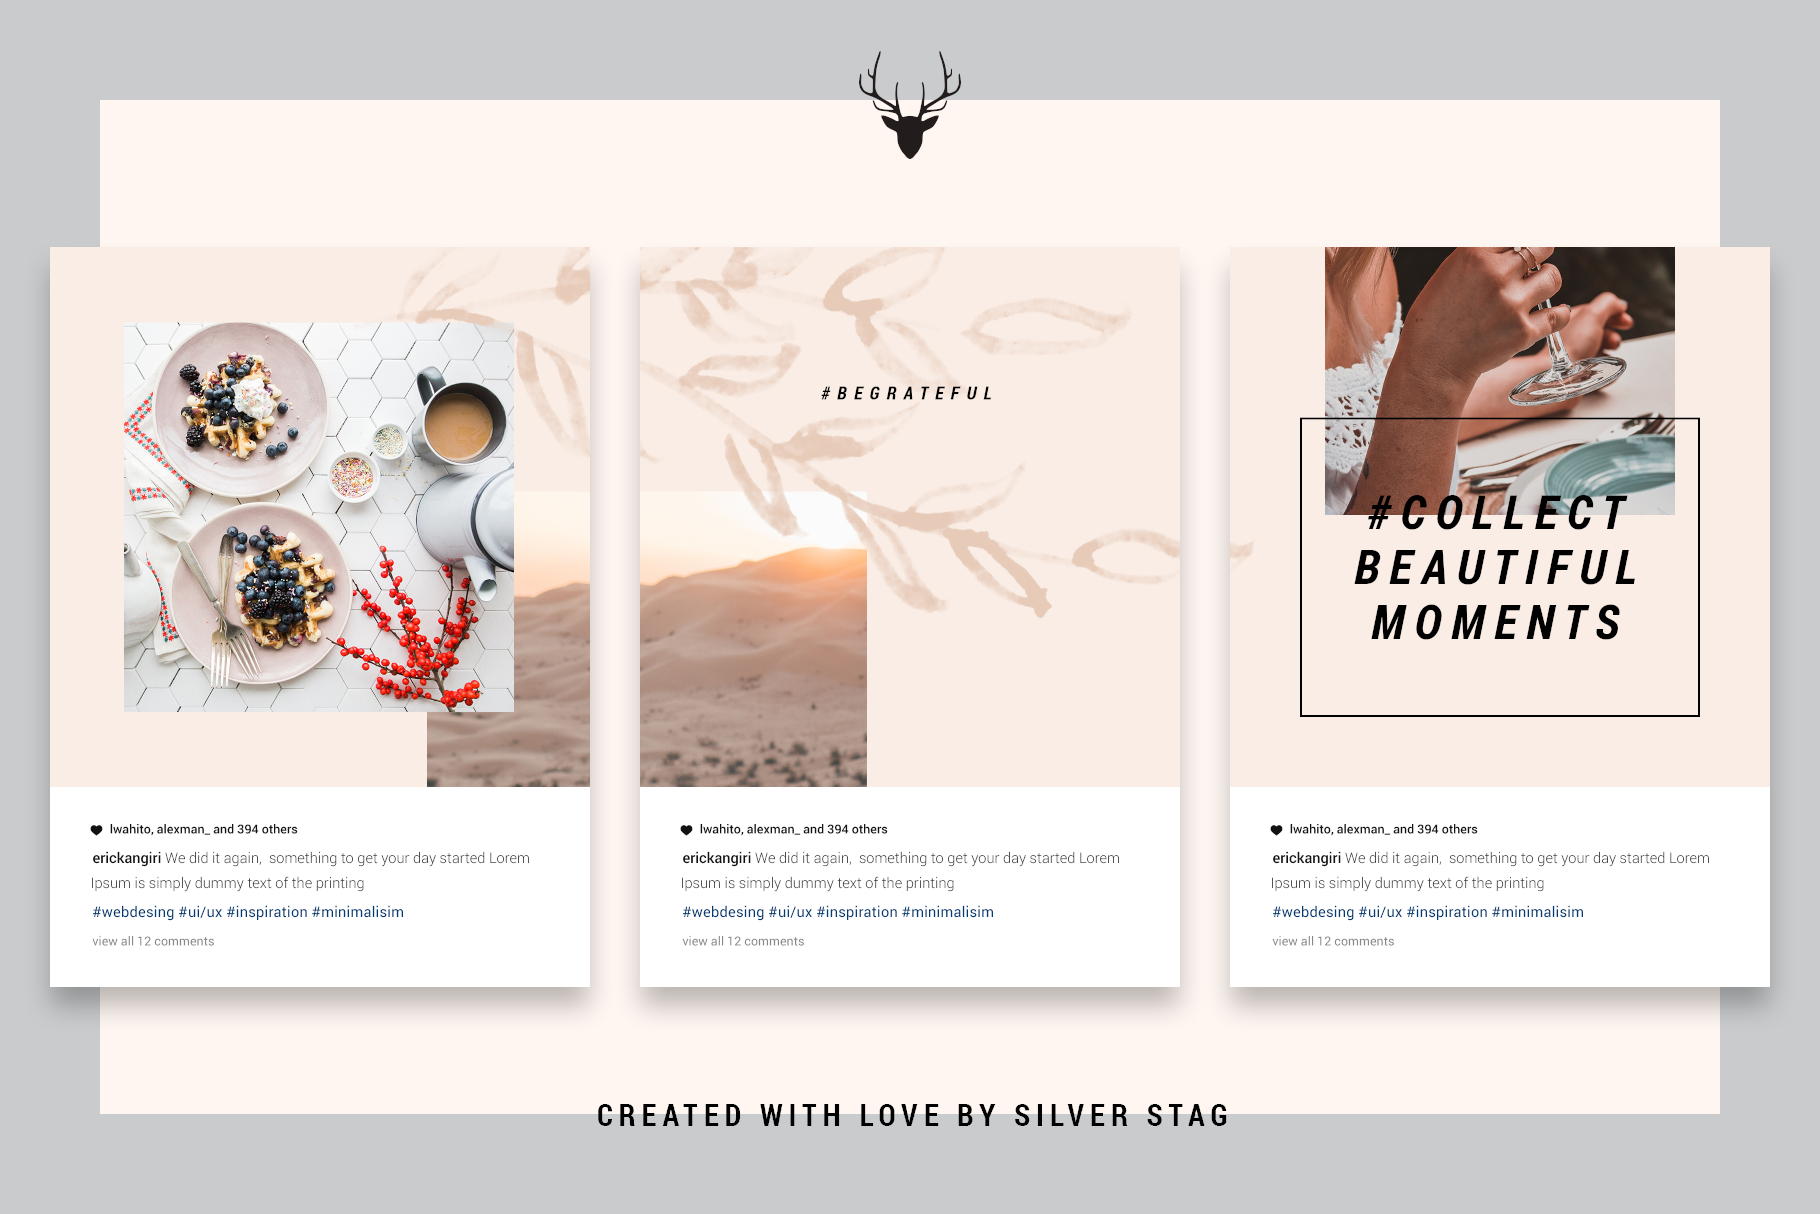 InstaGrid 5.0 - Creative & Modern Instagram Puzzle Template example image 6